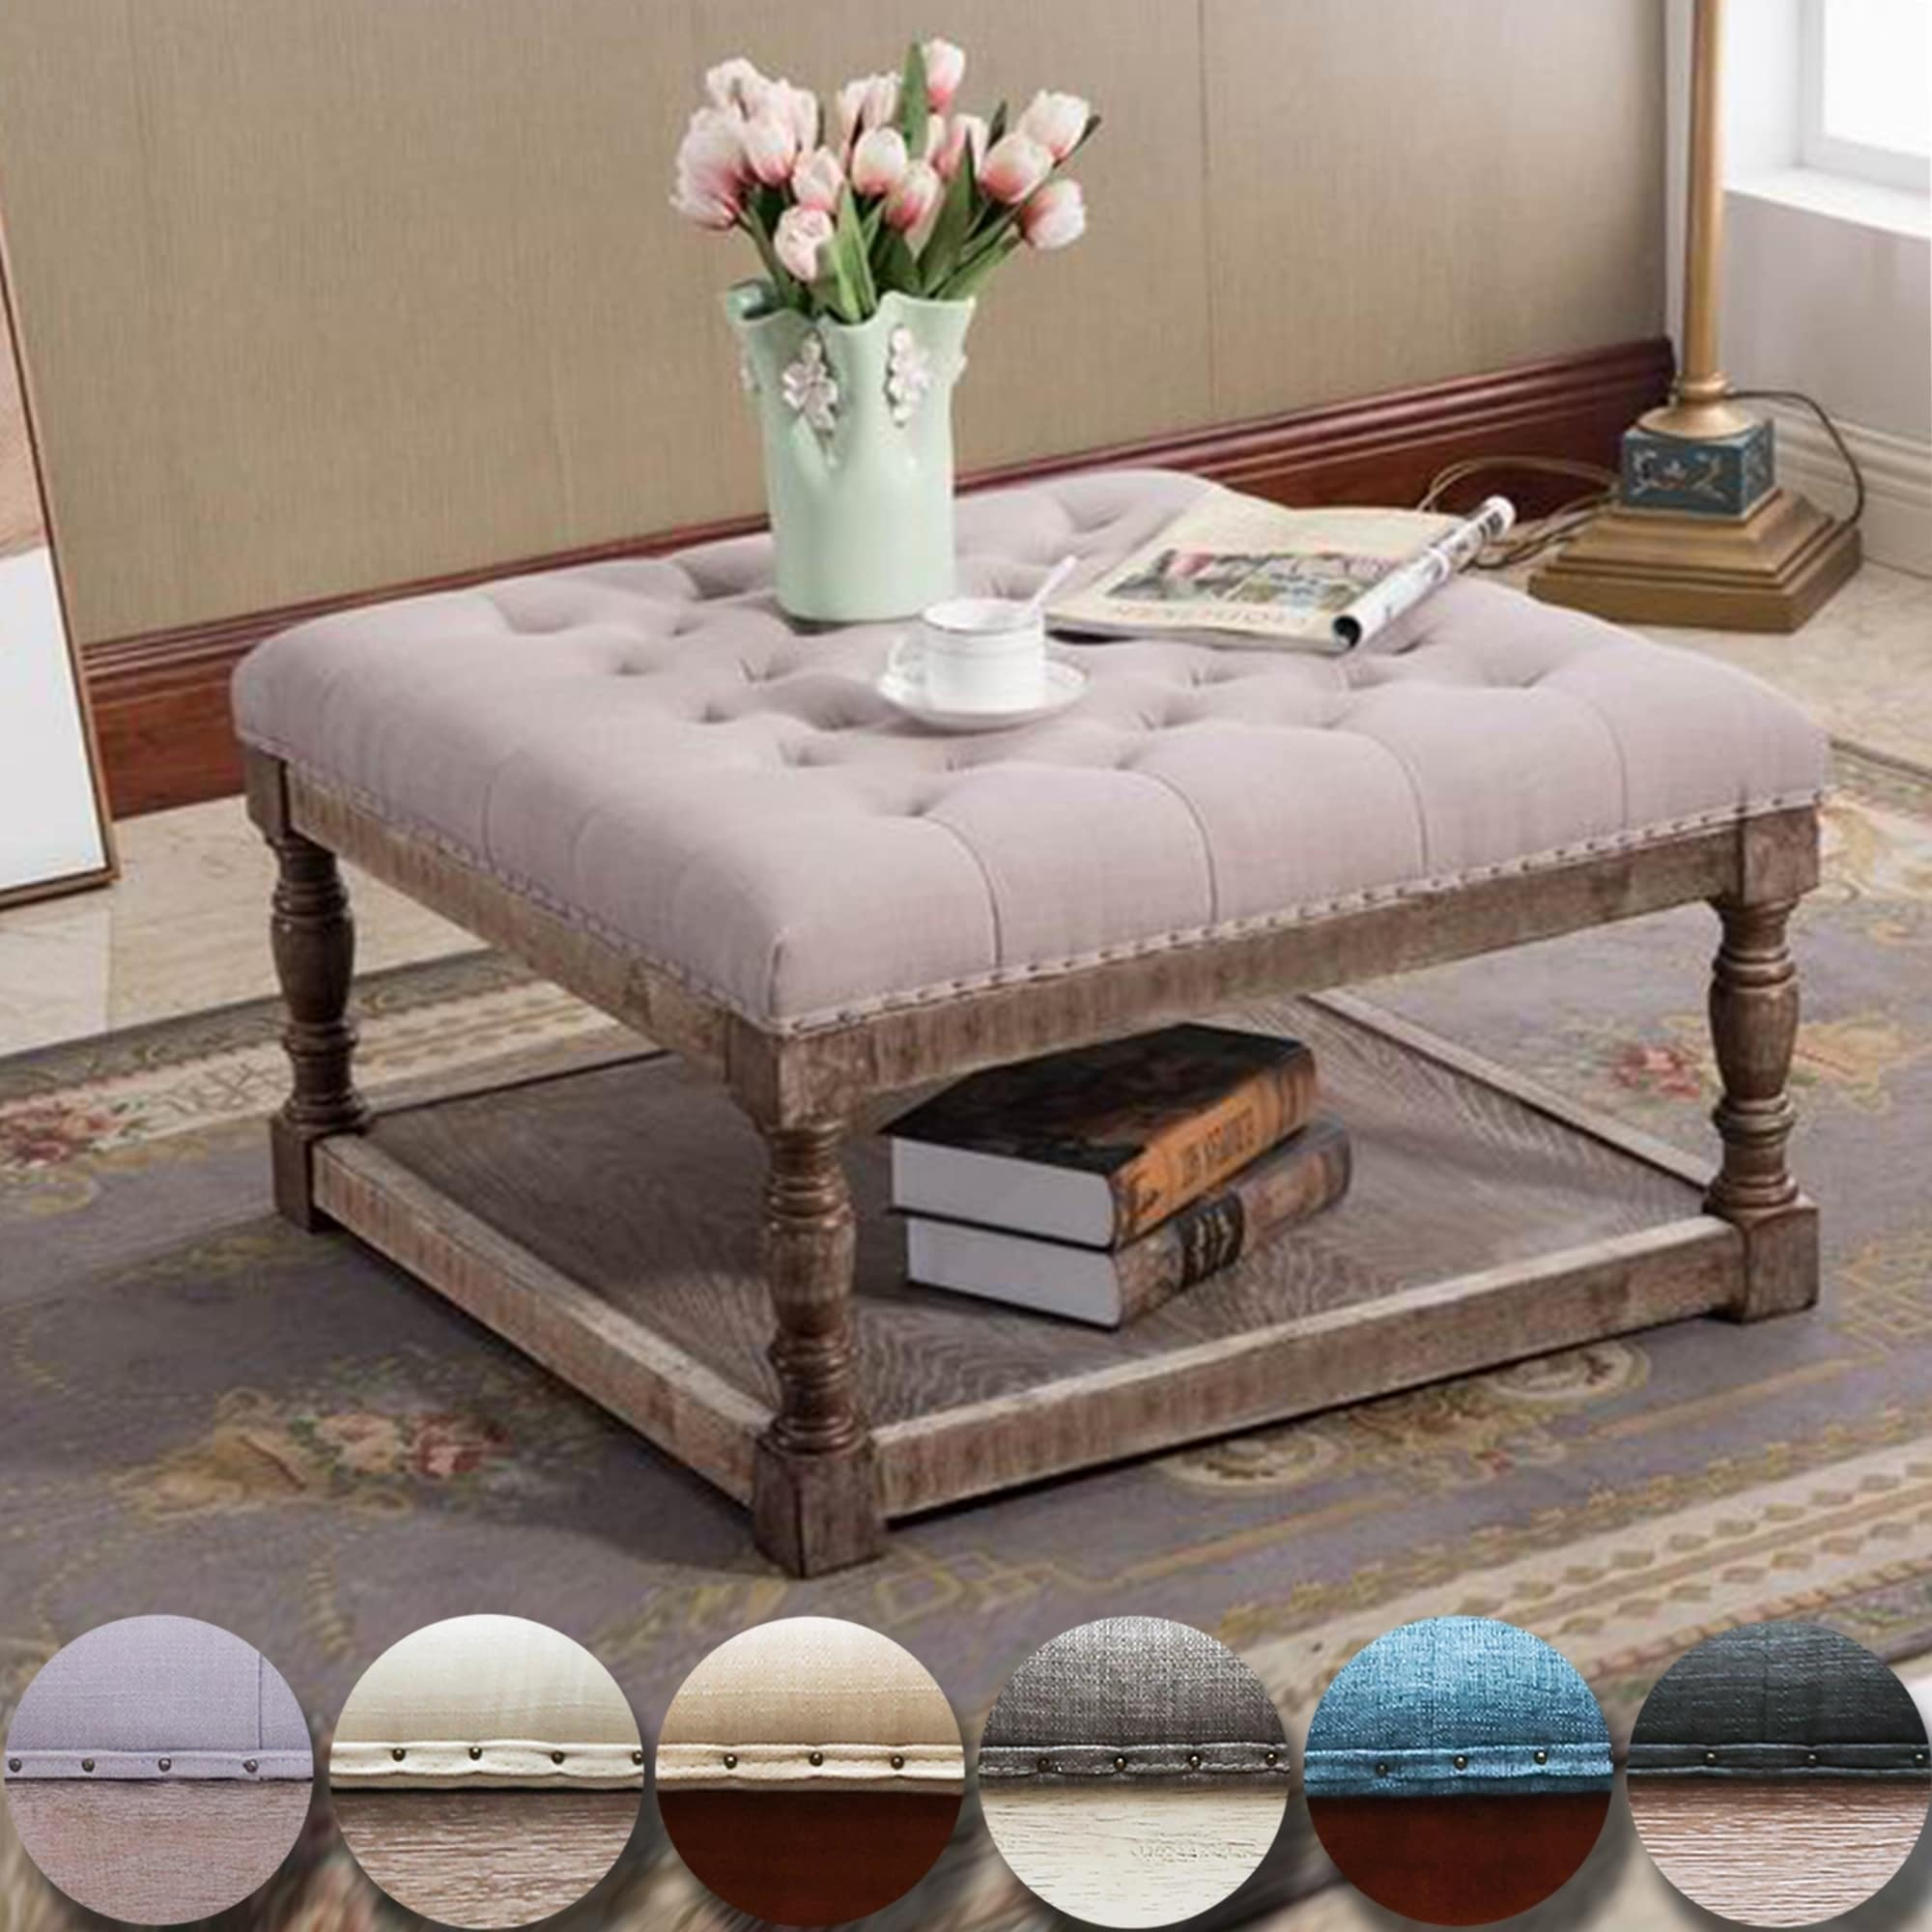 cairona fabric 30 inch tufted shelved ottoman optional colors